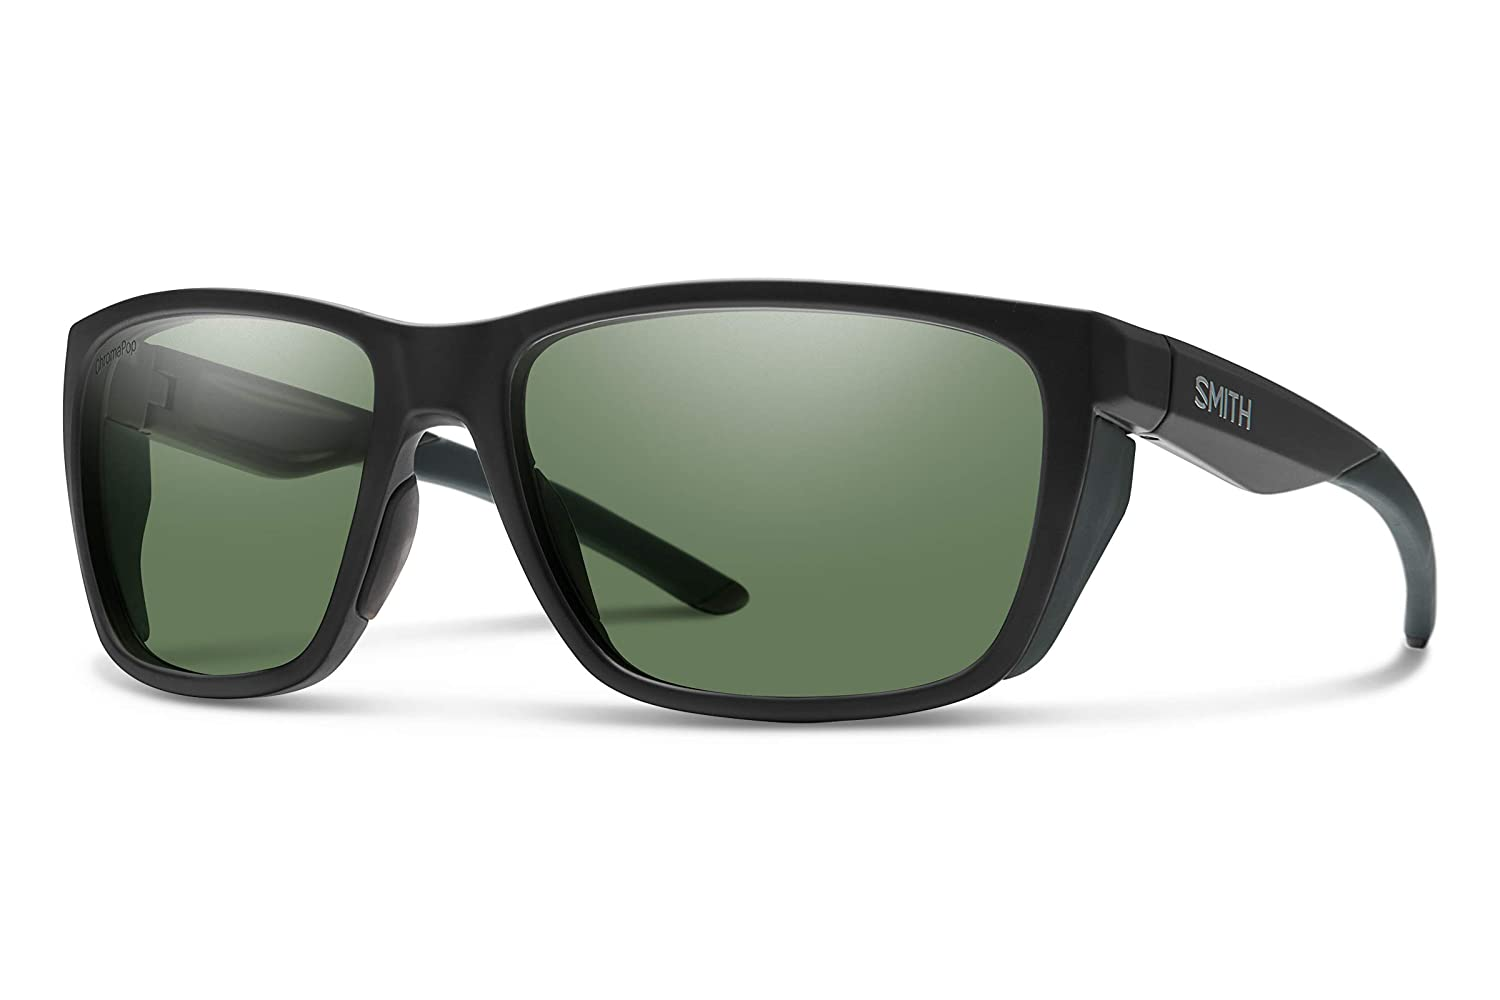 Smith Longfin Sunglasses /& Carekit Bundle